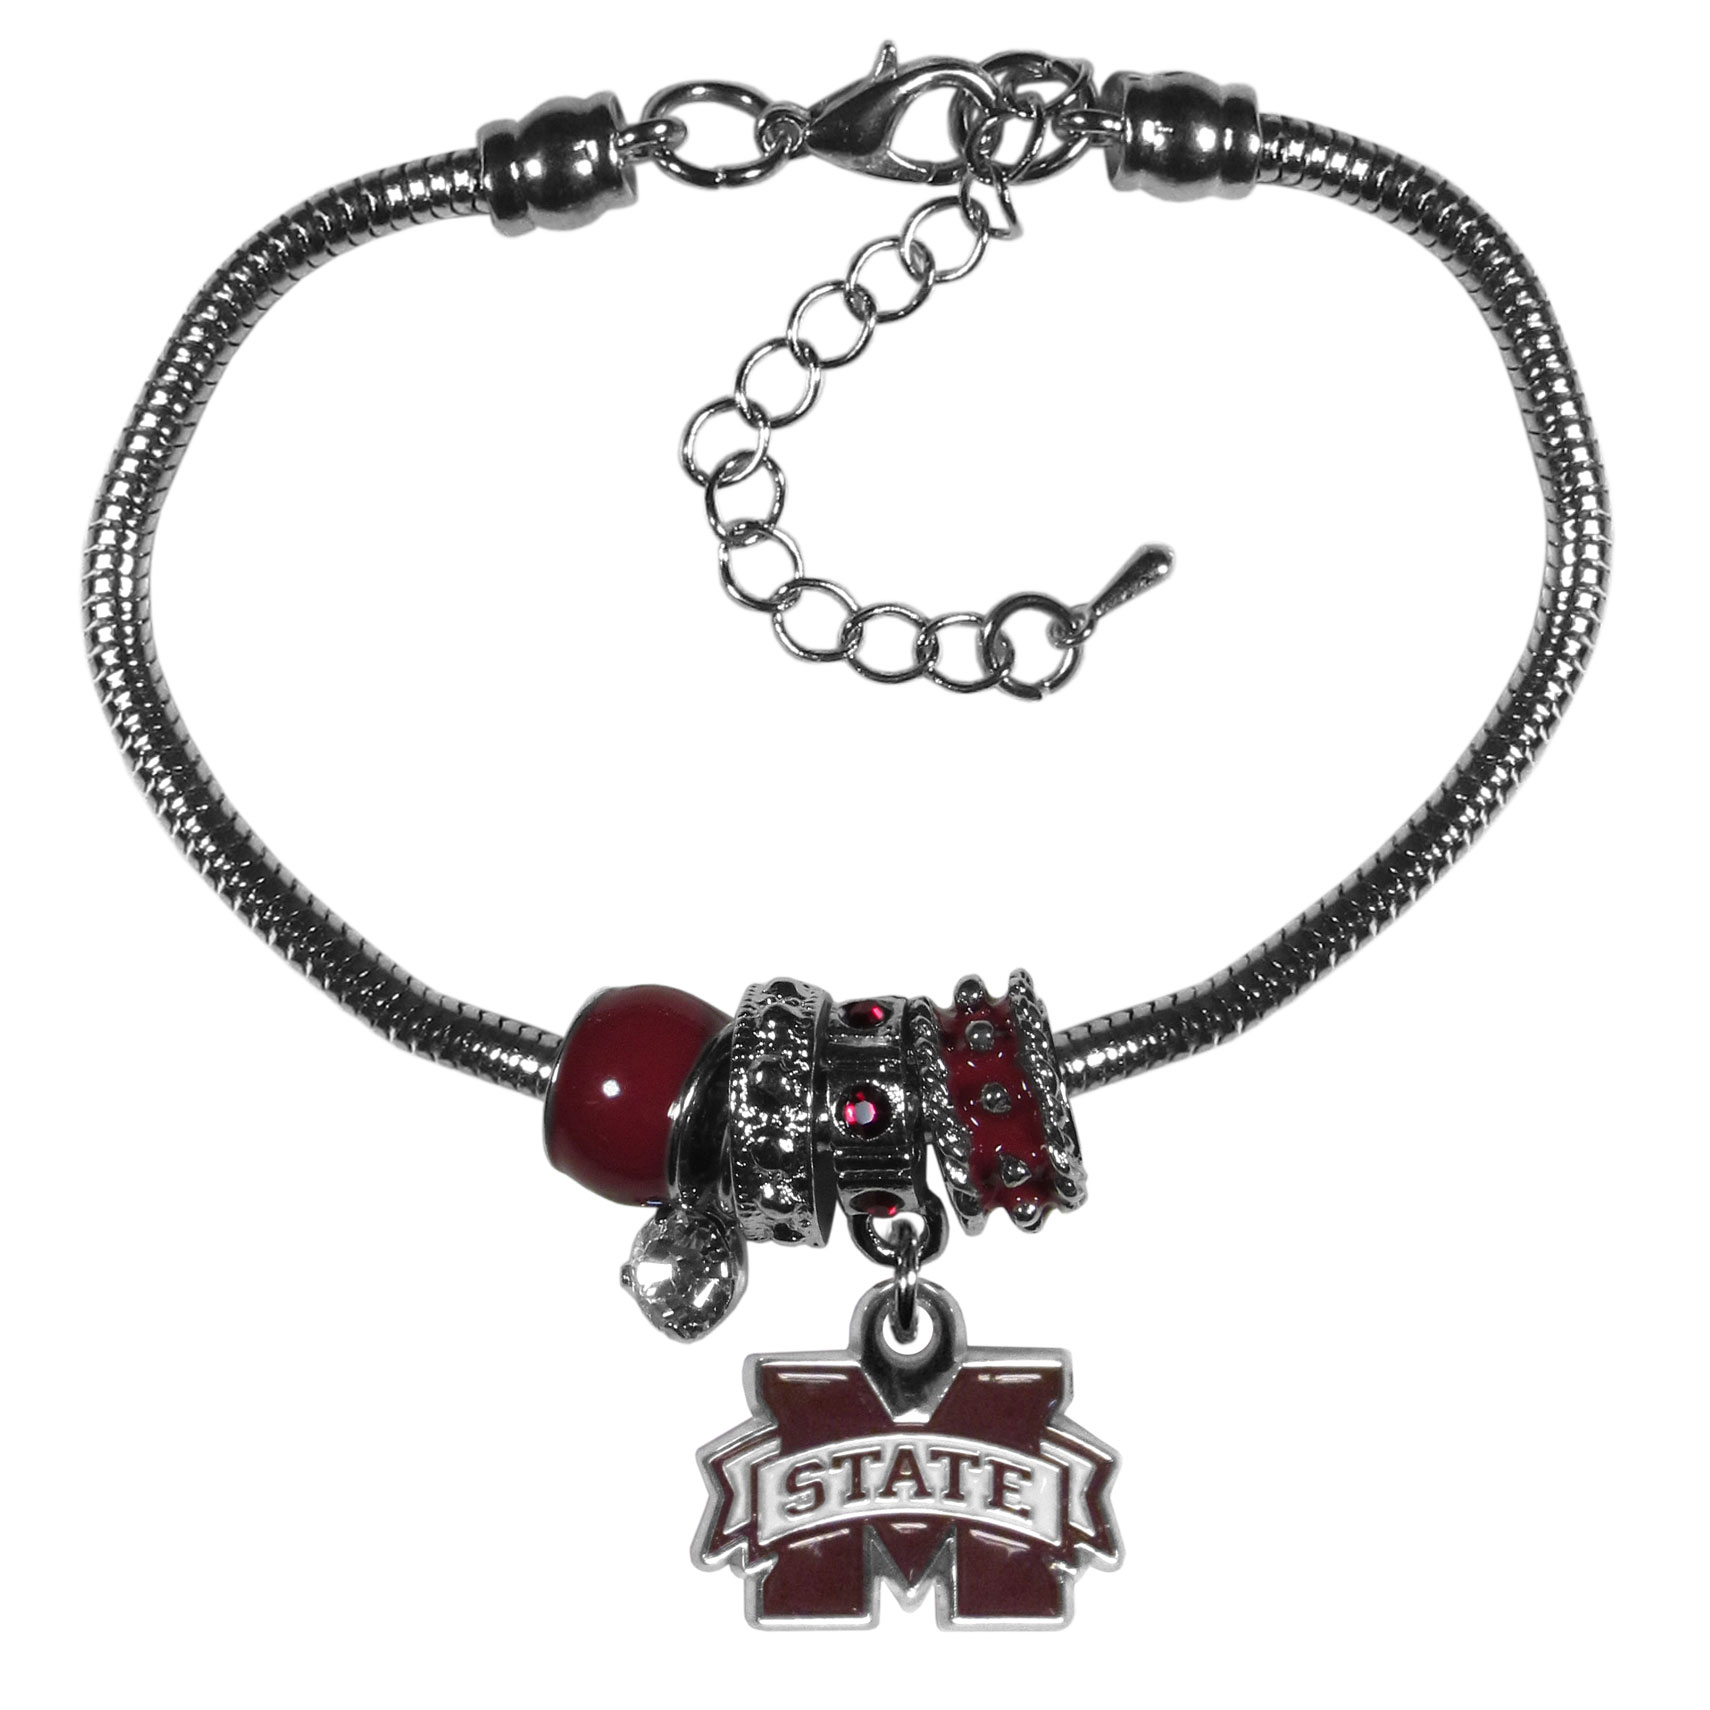 Mississippi St. Bulldogs Euro Bead Bracelet - We have combined the wildly popular Euro style beads with your favorite team to create our  Mississippi St. Bulldogs bead bracelet. The 7.5 inch snake chain with 2 inch extender features 4 Euro beads with enameled team colors and rhinestone accents with a high polish, nickel free charm and rhinestone charm. Perfect way to show off your team pride.